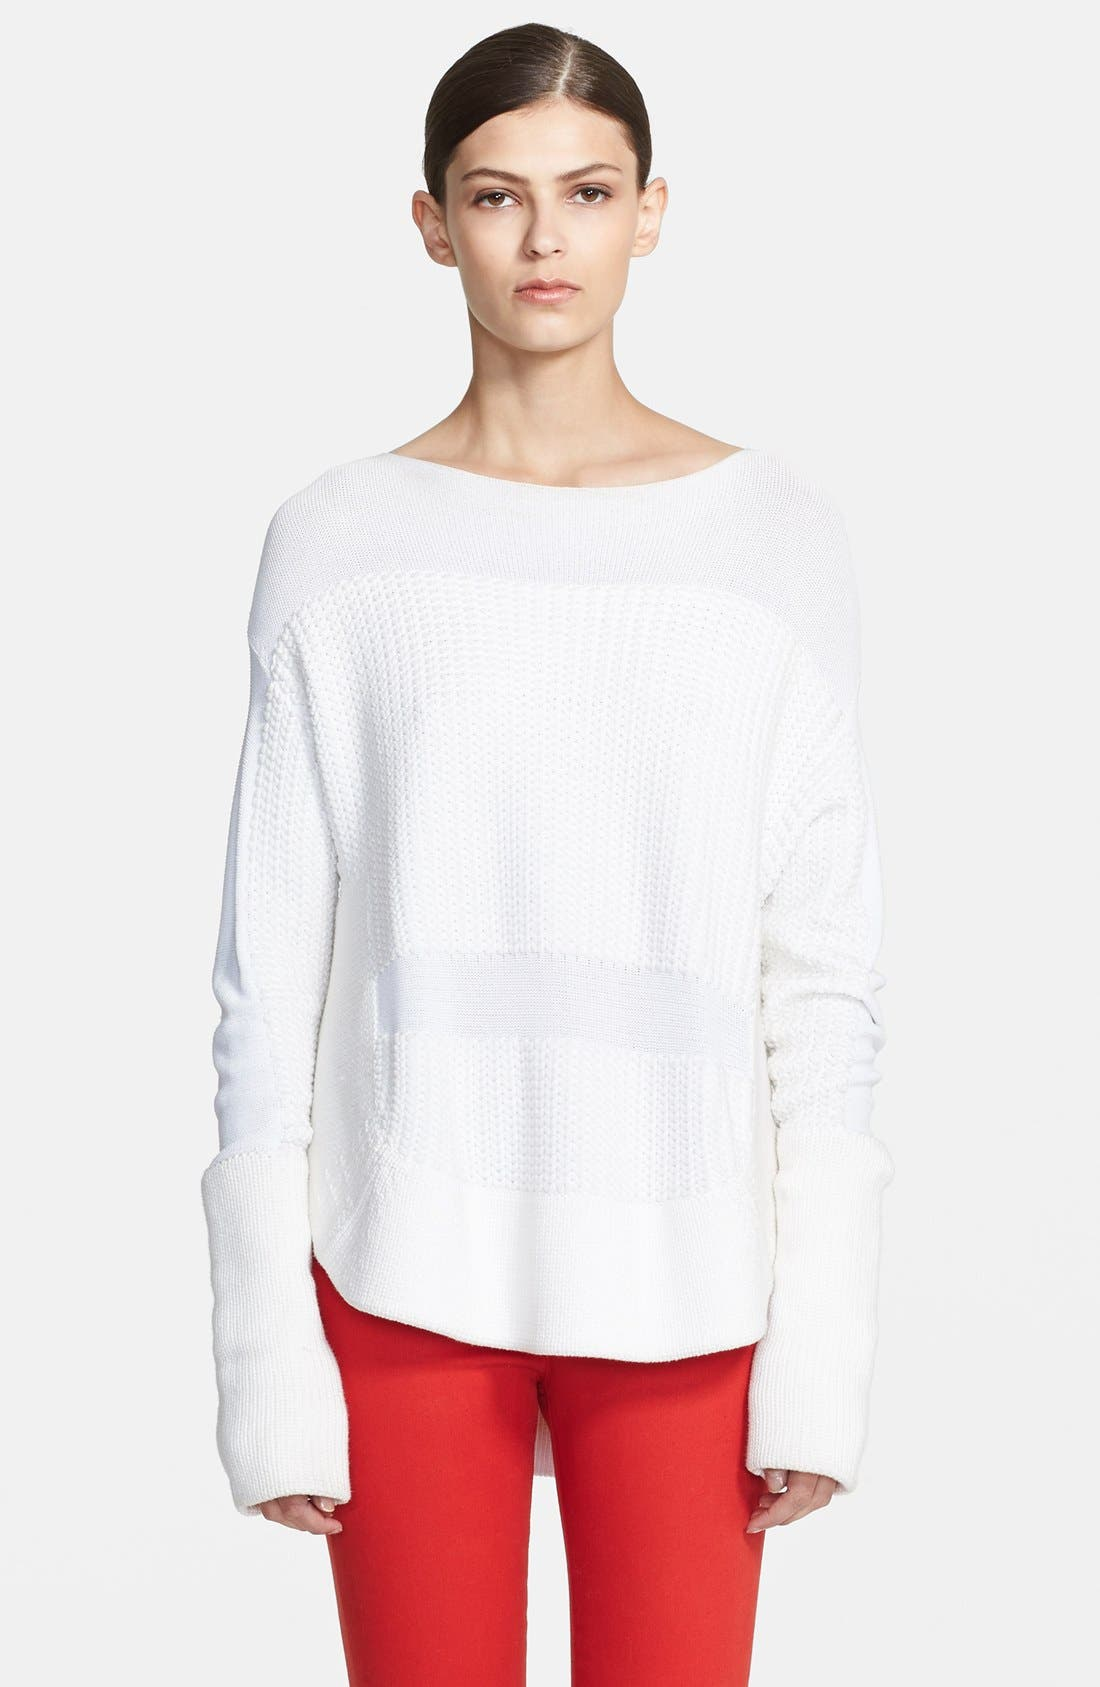 HELMUT LANG, Textured Inlay Sweater, Main thumbnail 1, color, 157